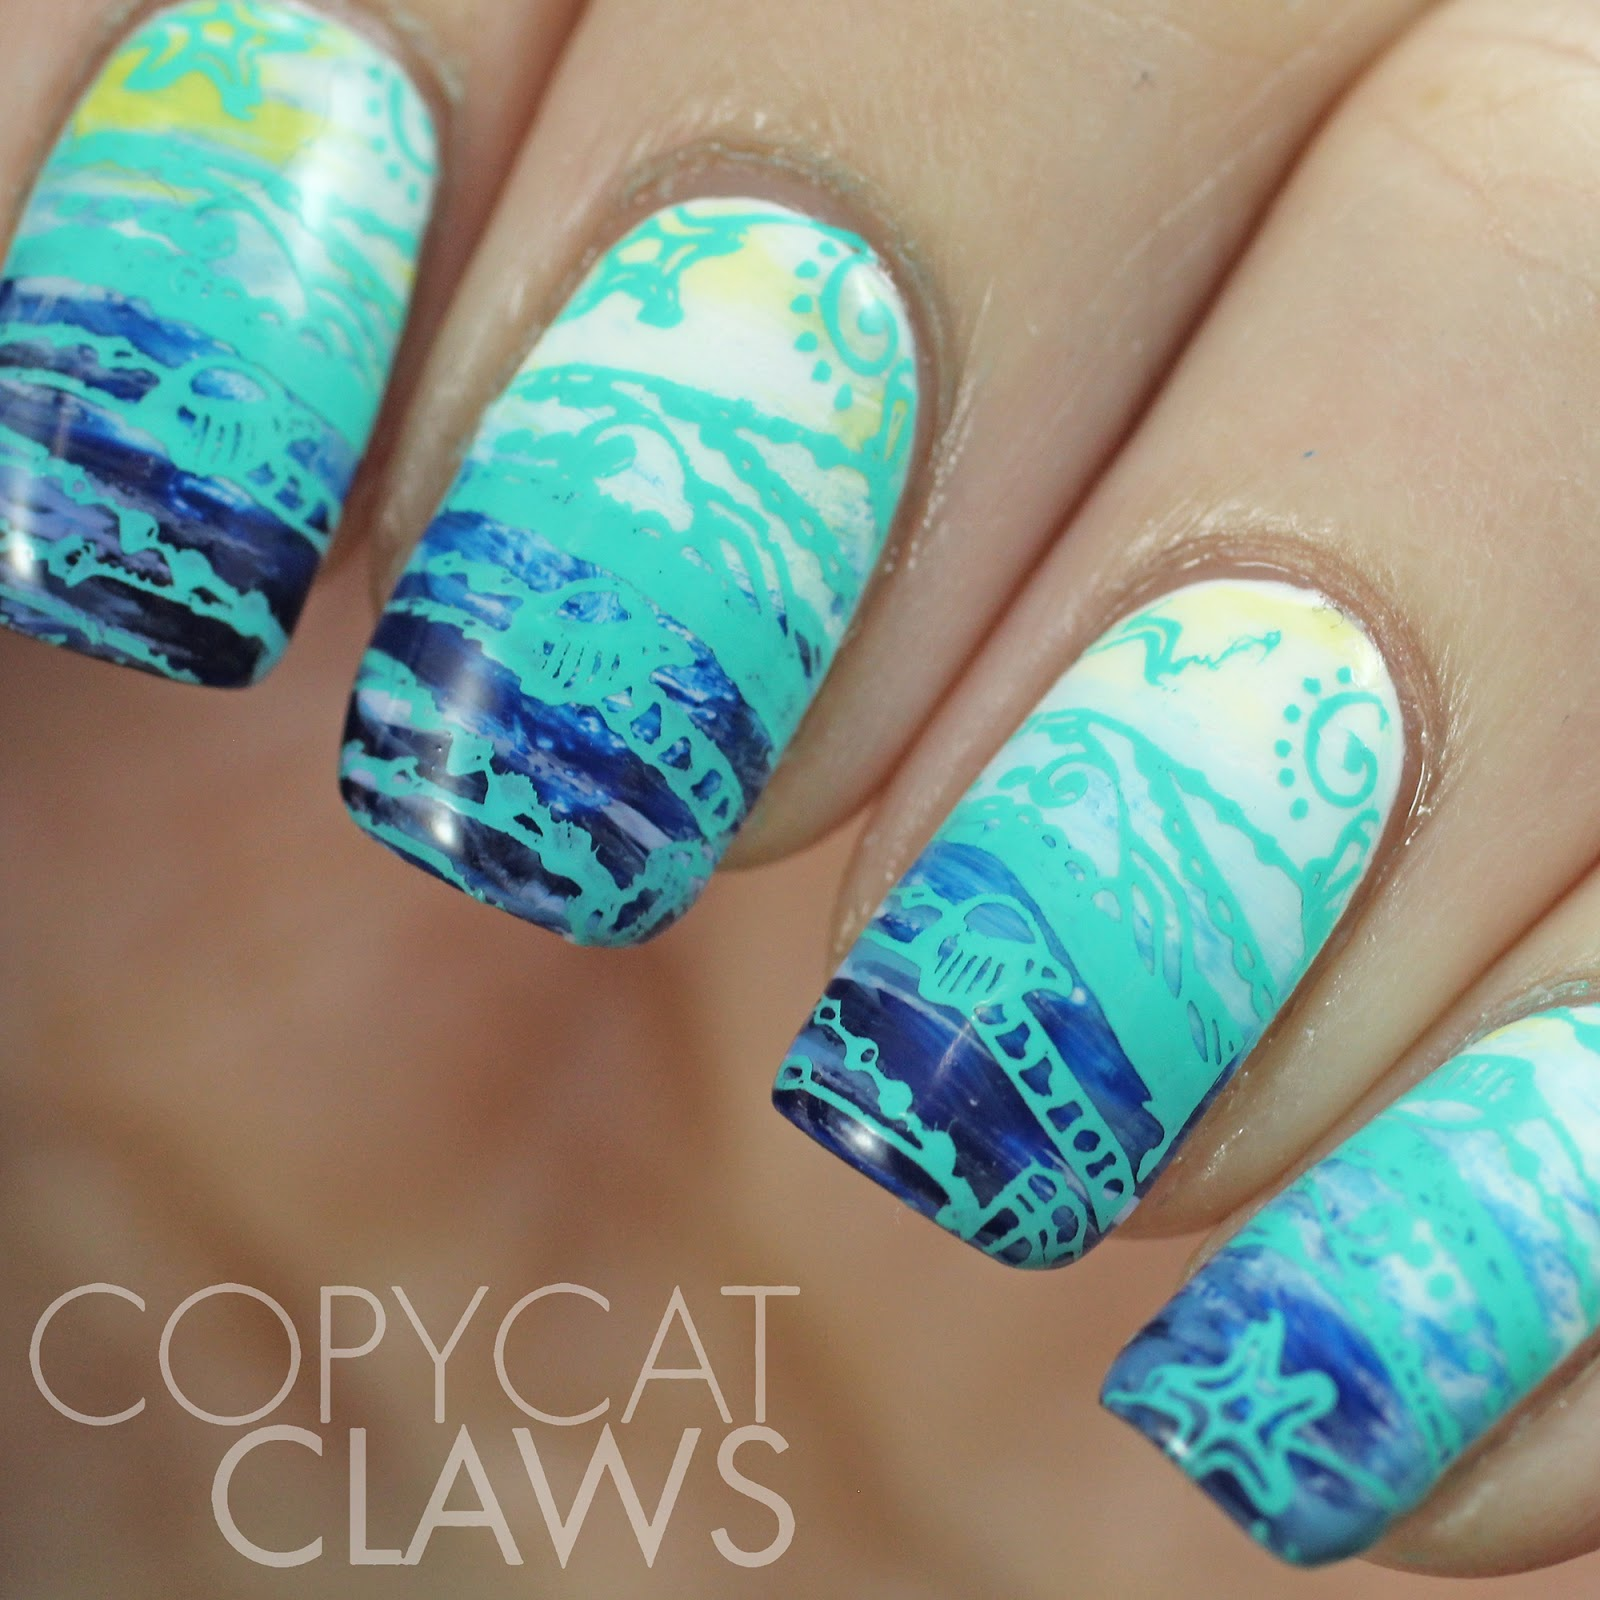 Copycat claws the digit al dozen does nature day 3 fan brush the digit al dozen does nature day 3 fan brush ocean nail art prinsesfo Image collections